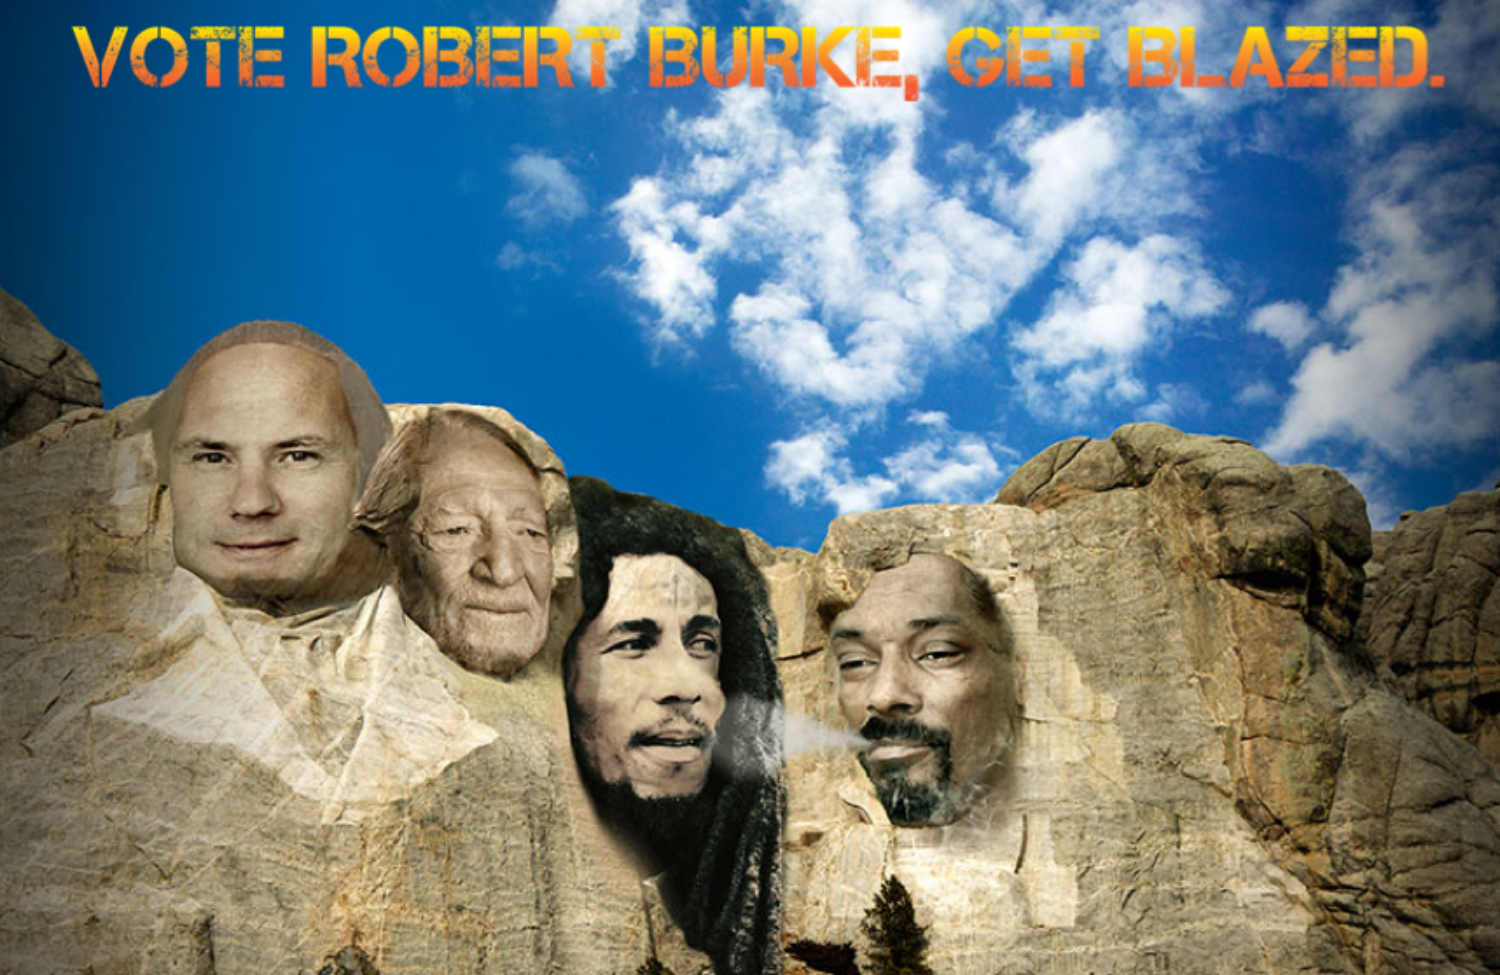 Vote-Robert-Burke-Get-Blazed